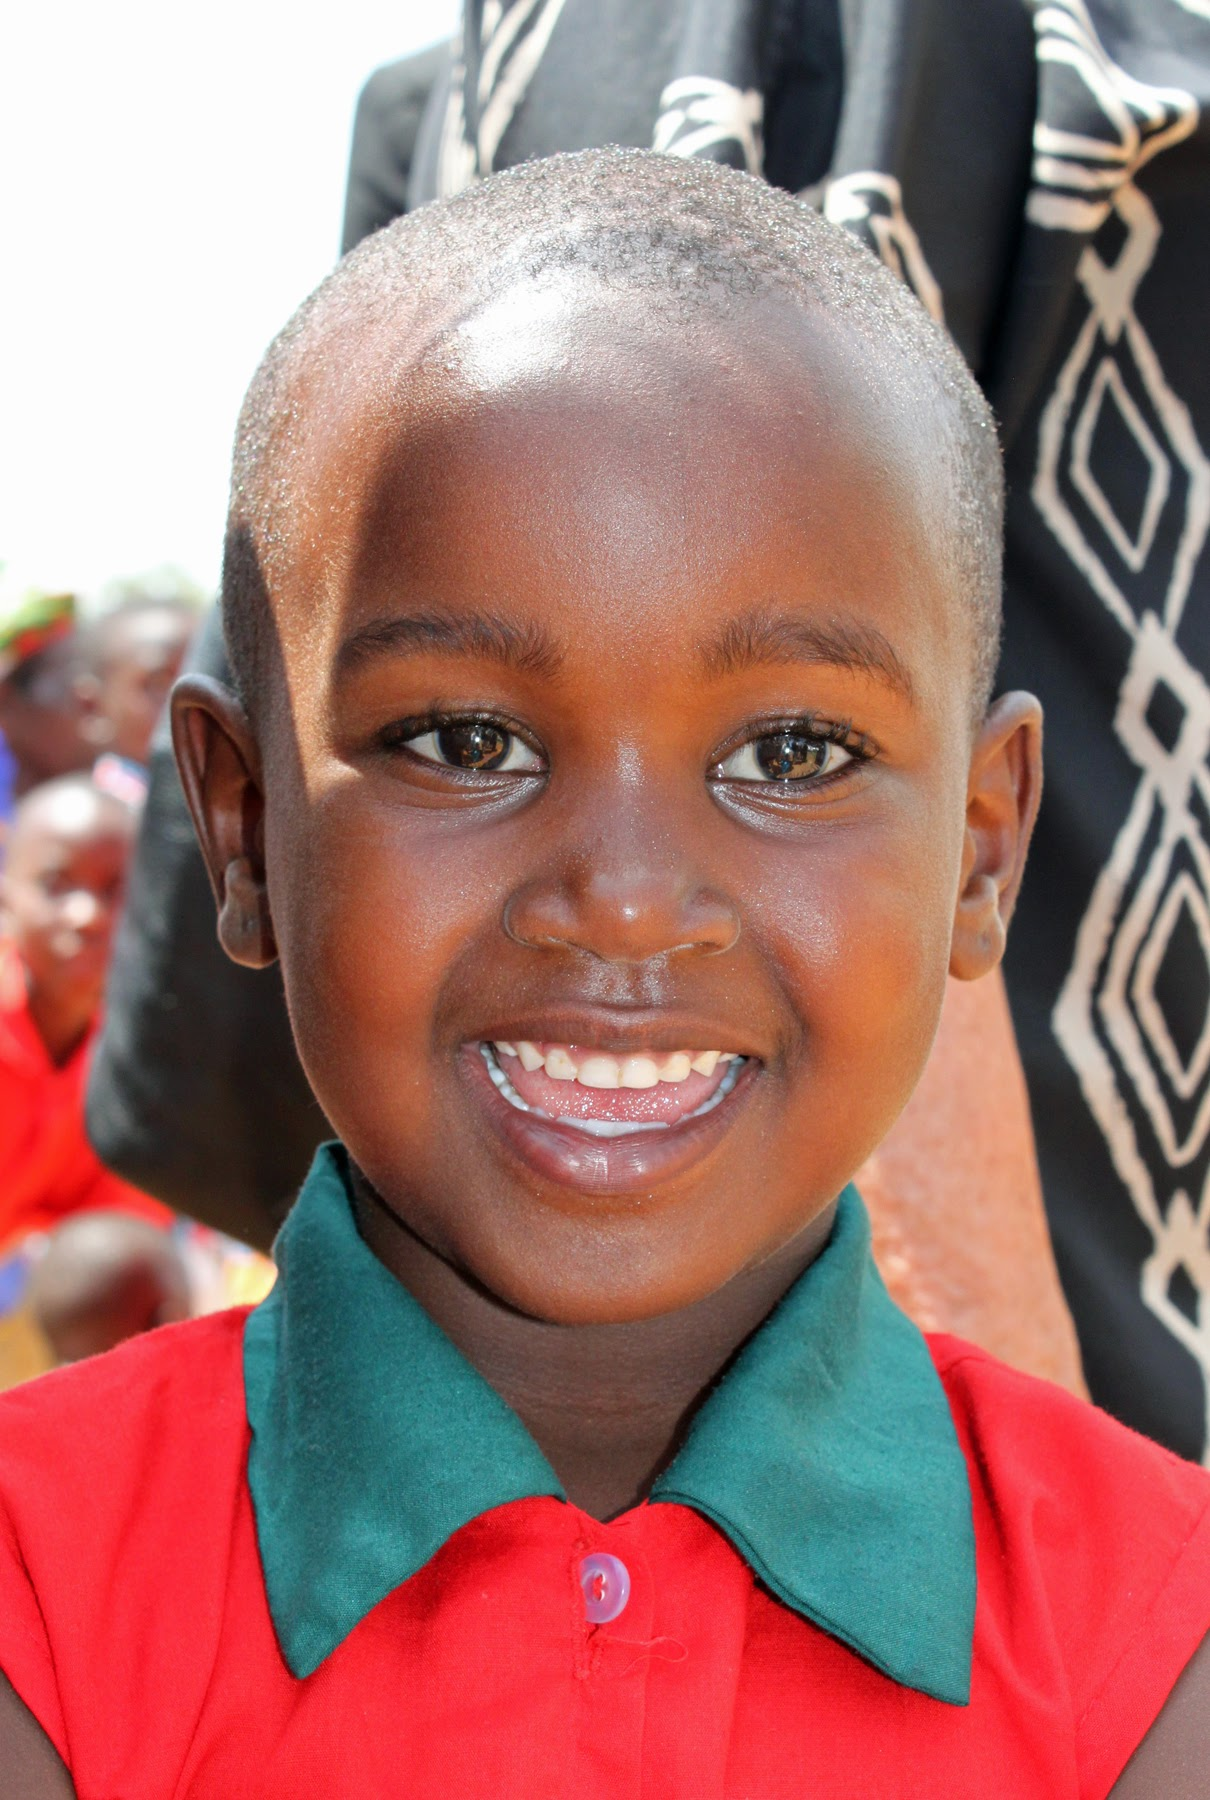 Close up photo of Uganda Orphan